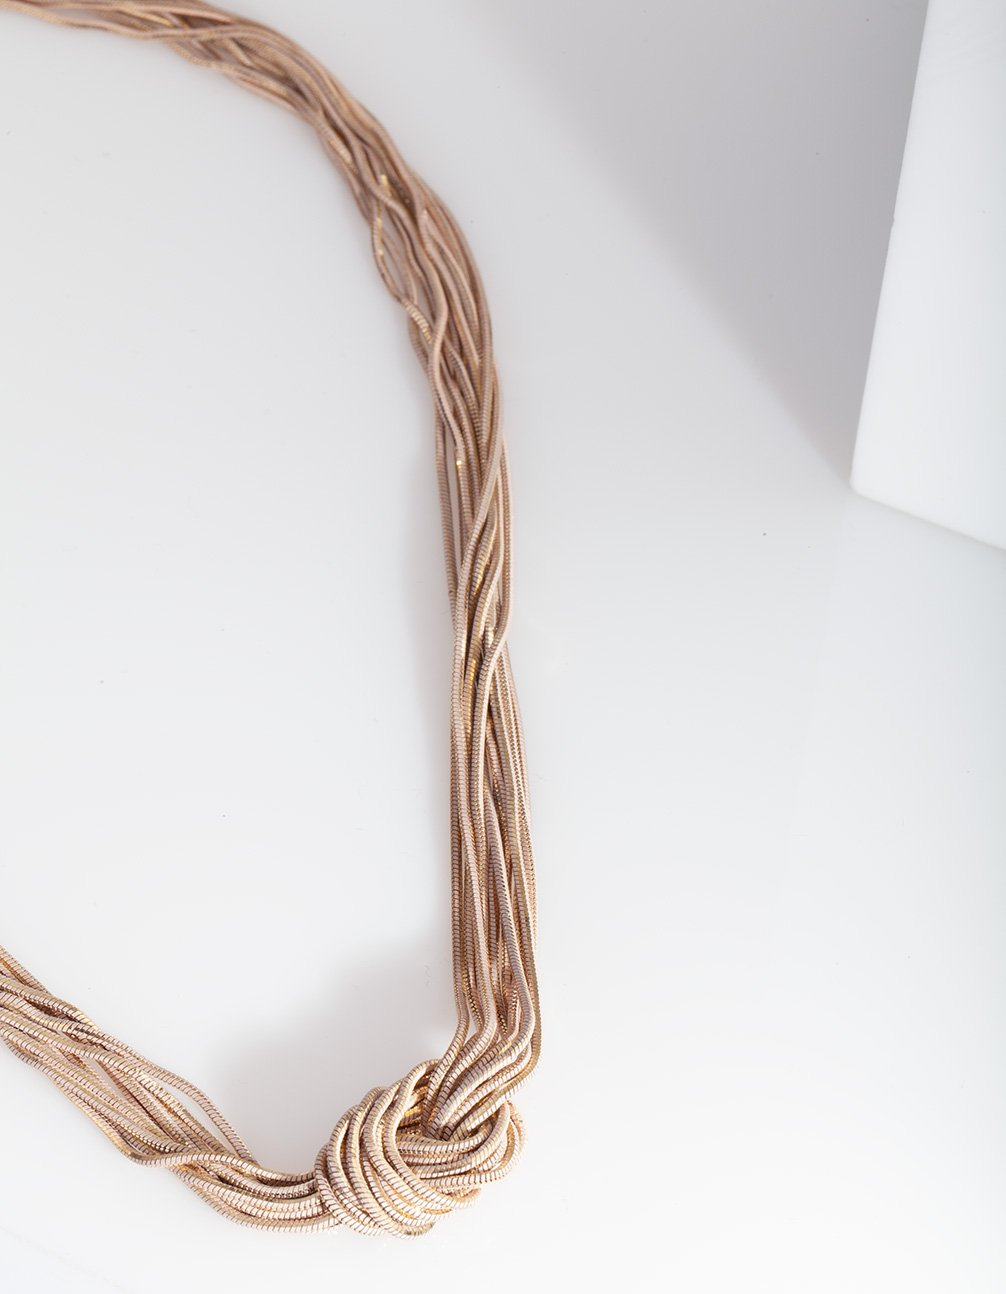 Rose Gold Thread Chain Necklace